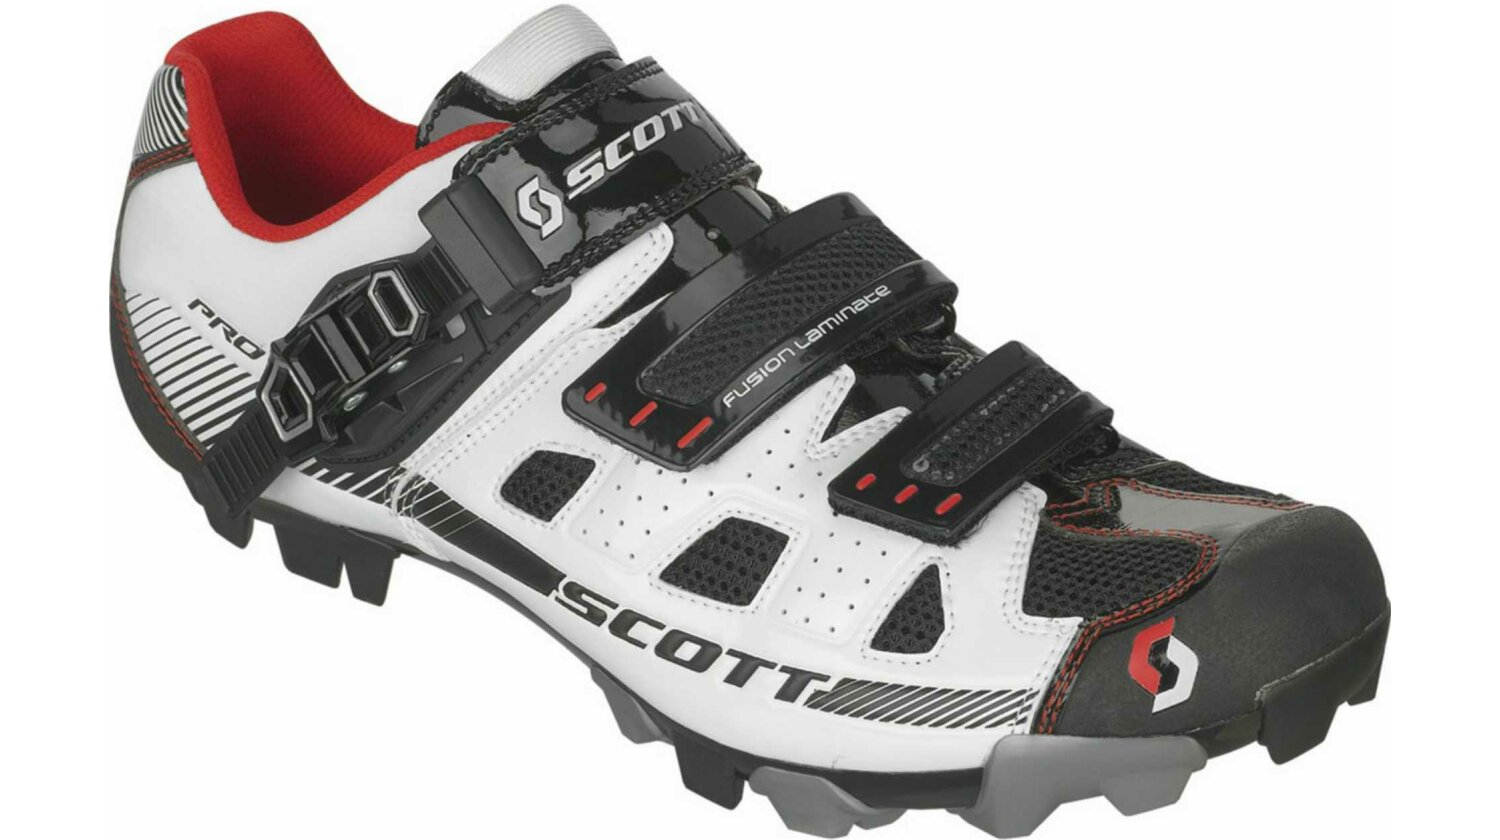 Scott MTB Pro Schuh white/black gloss 43